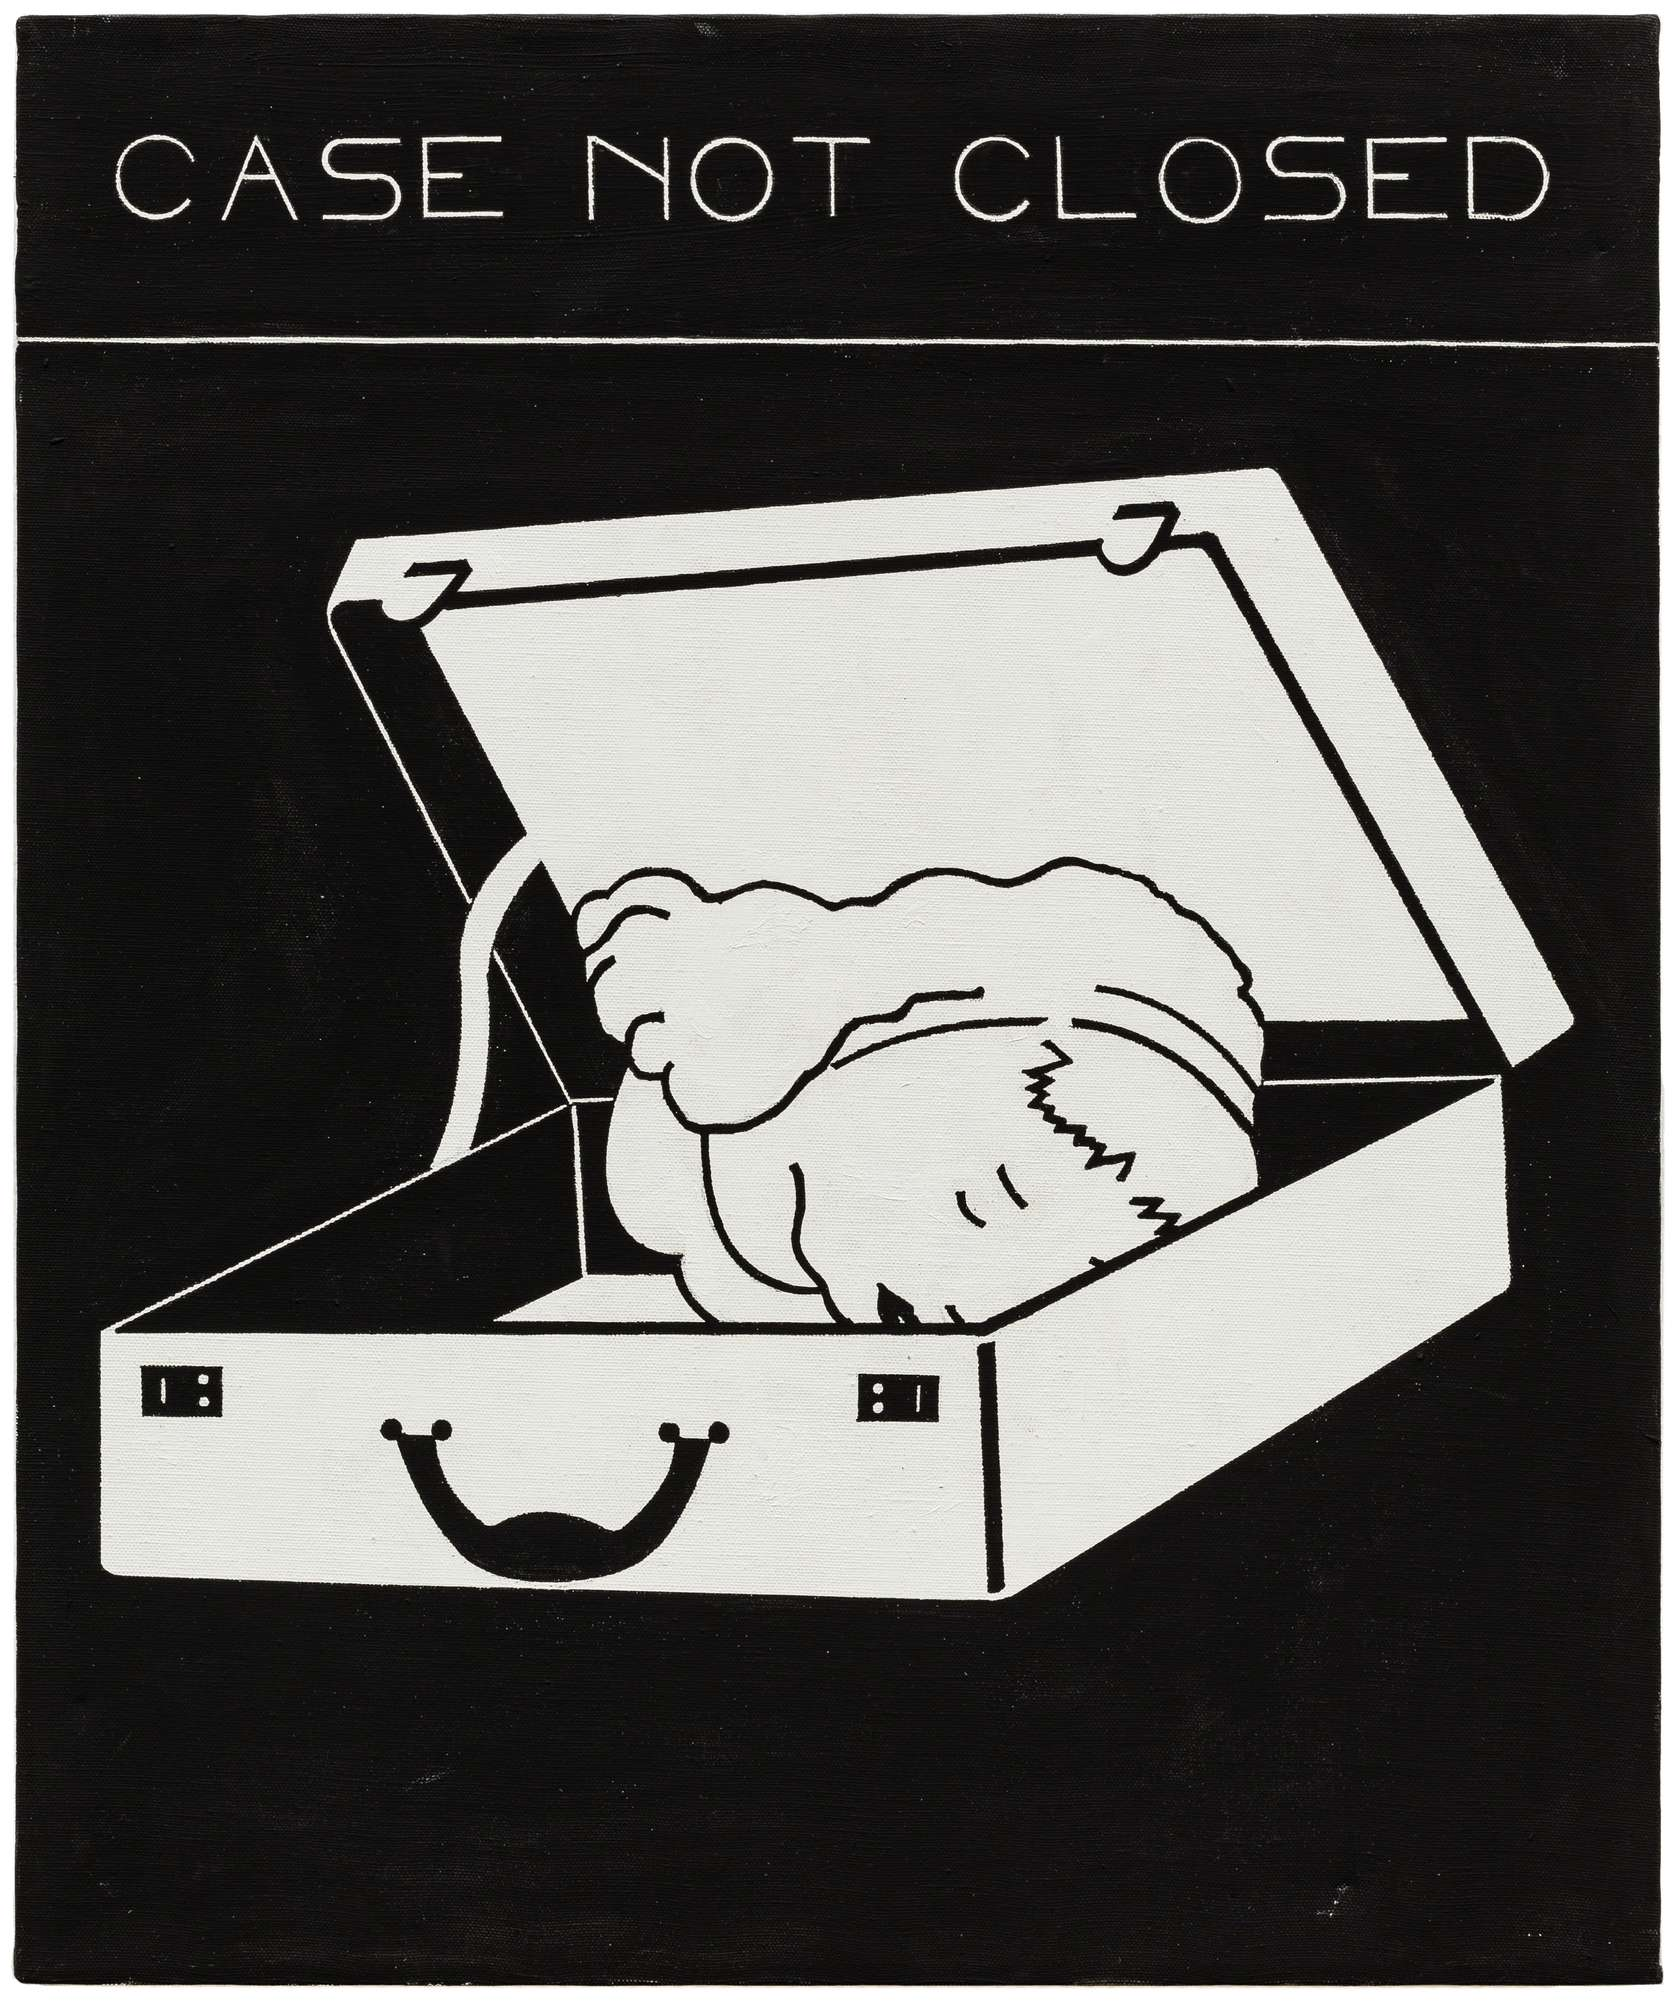 Steve Gianakos, Case not closed, 1980 Acrylique sur toile61 x 50 cm / 24  x 19 5/8 inches